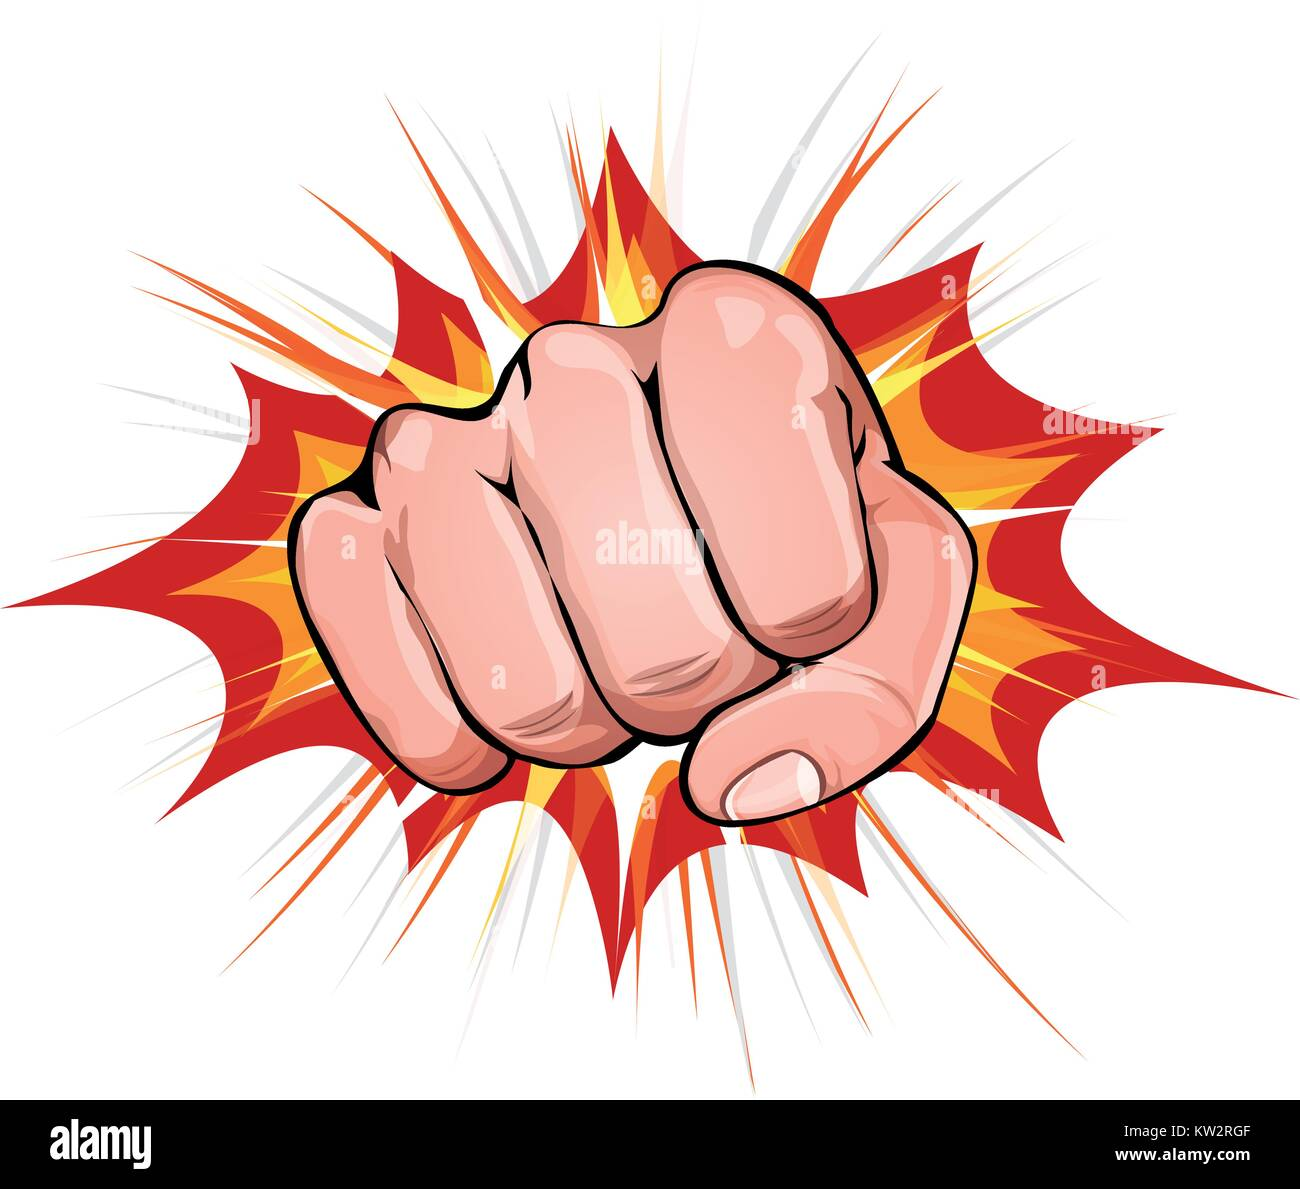 Illustration of a powerful fist punching, on explosion background - Stock Vector